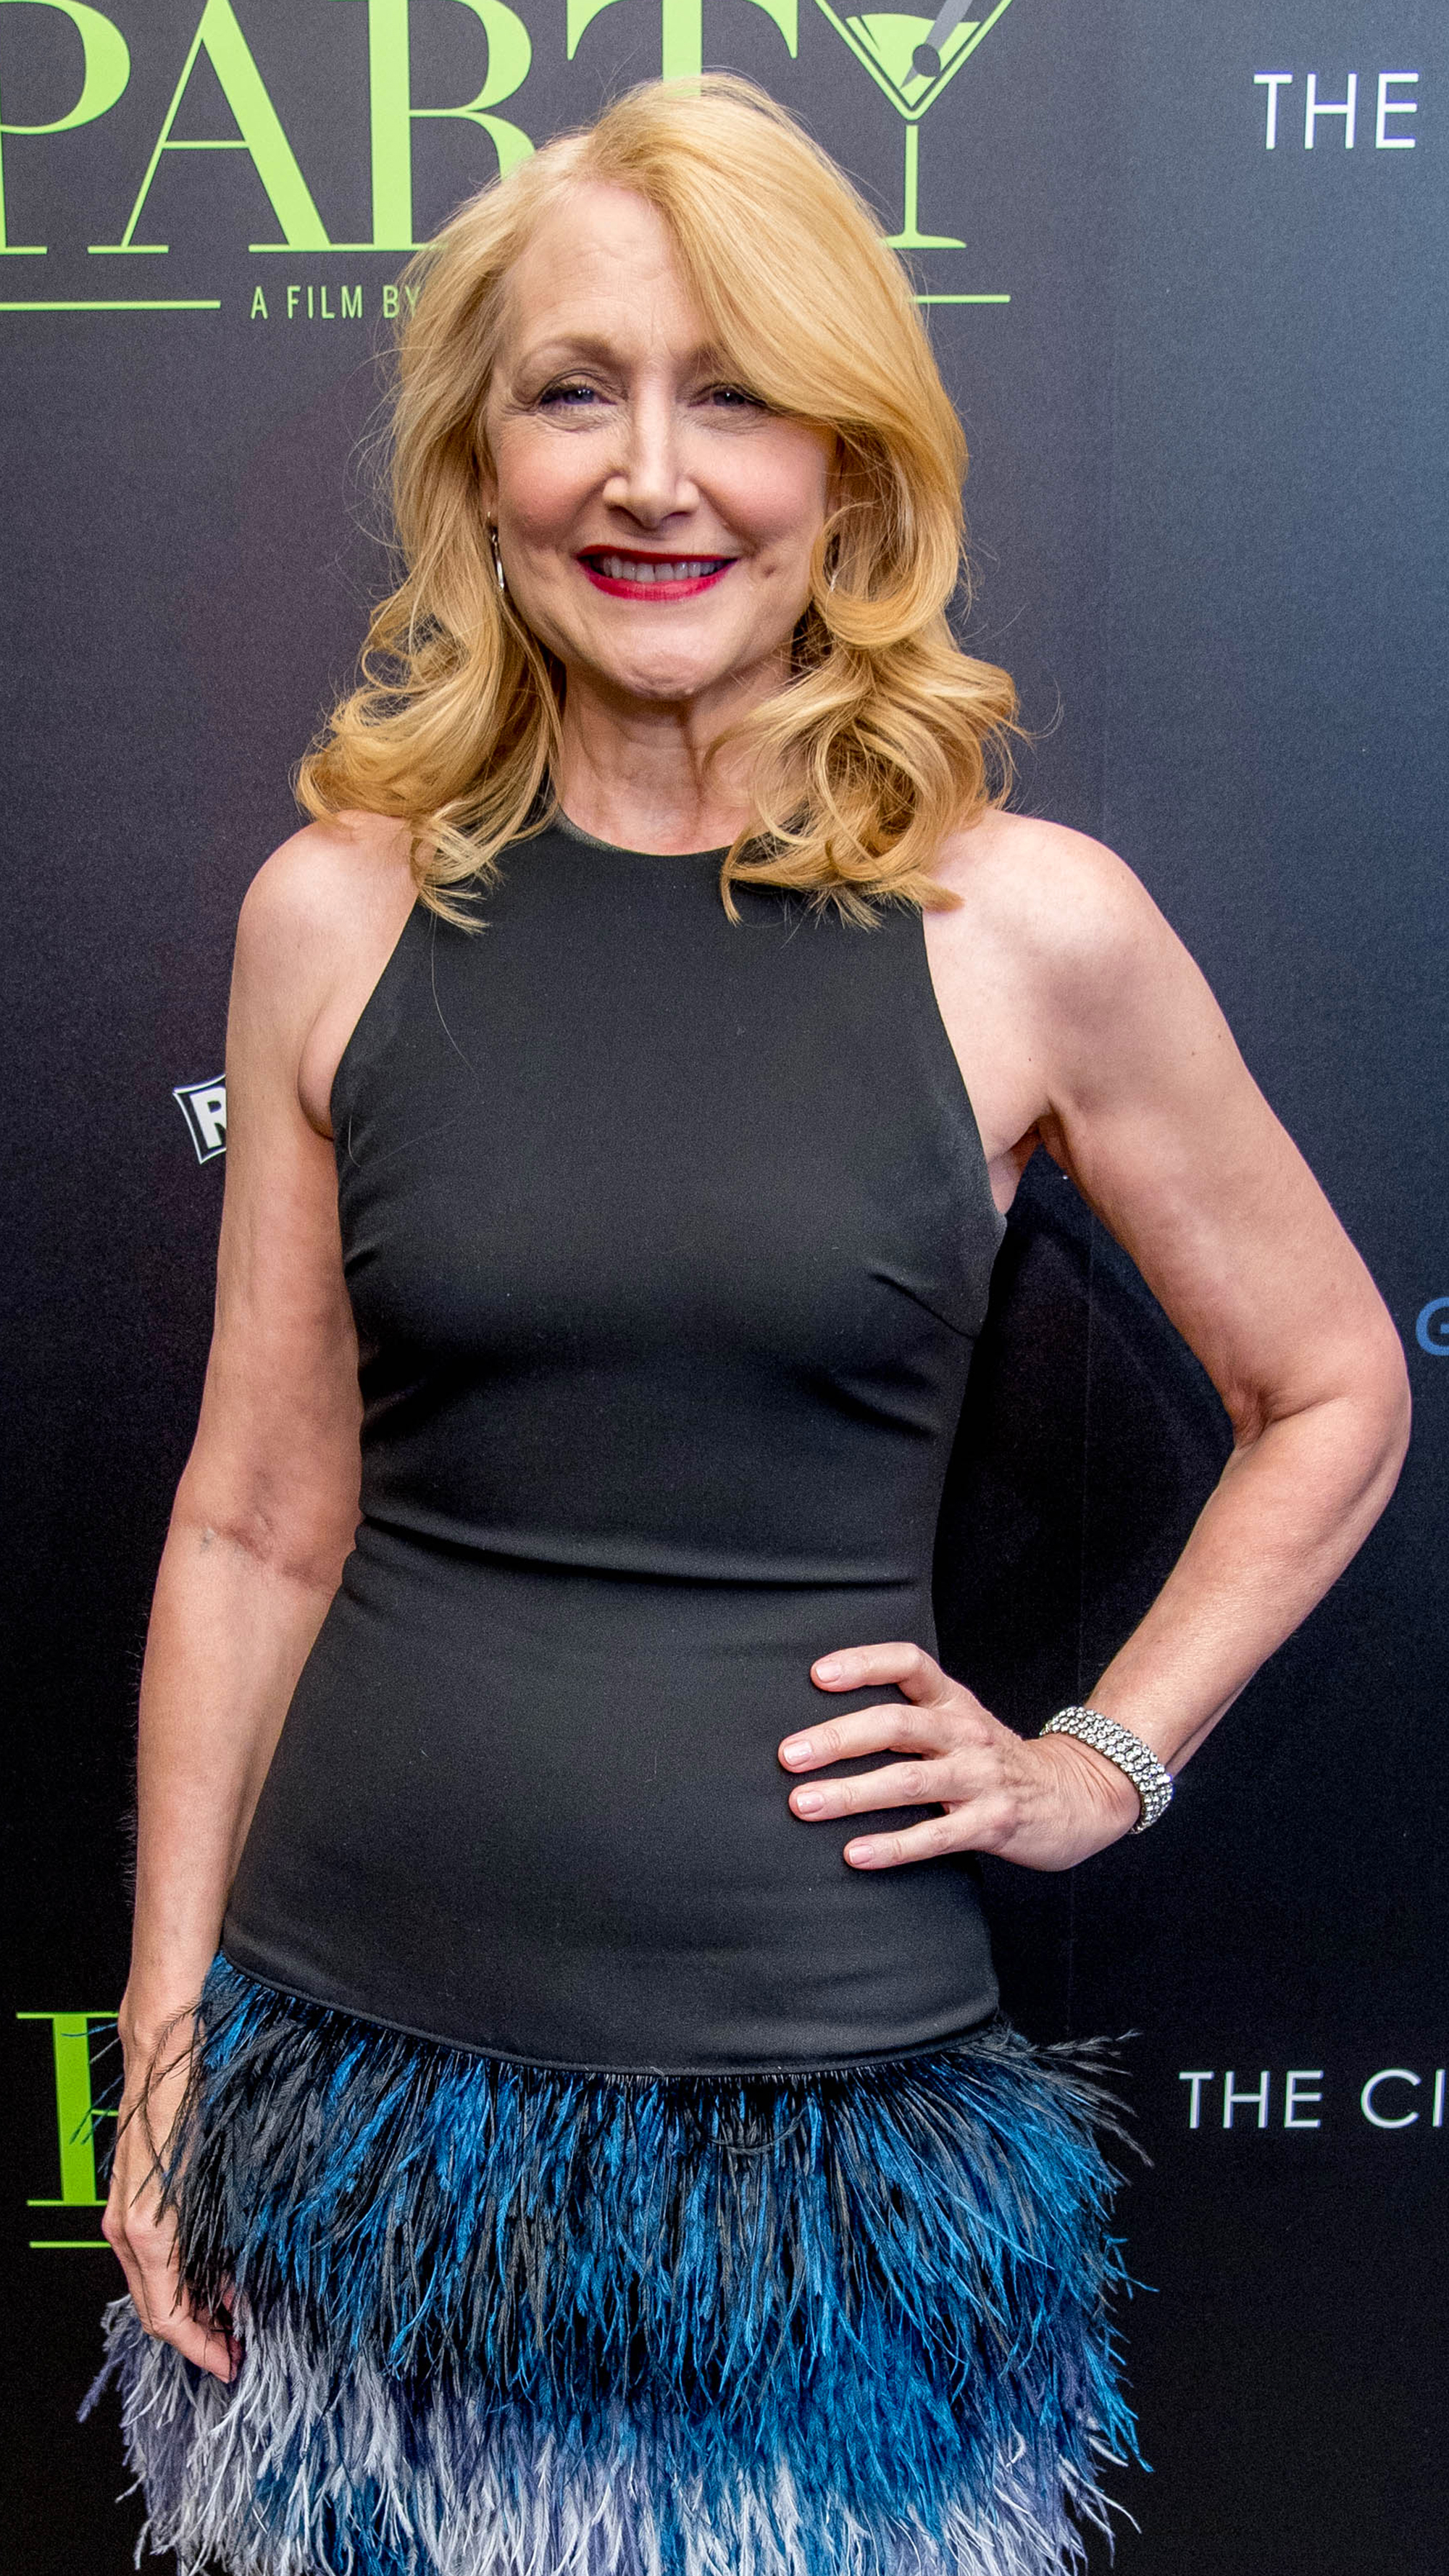 """Celebs Reveal Their Favorite Moments of 2018 - Watching her hometown football team, the New Orleans Saints, have a stellar season was a source of joy this year for the Sharp Objects star. """"I'm so excited,"""" she tells Us ."""